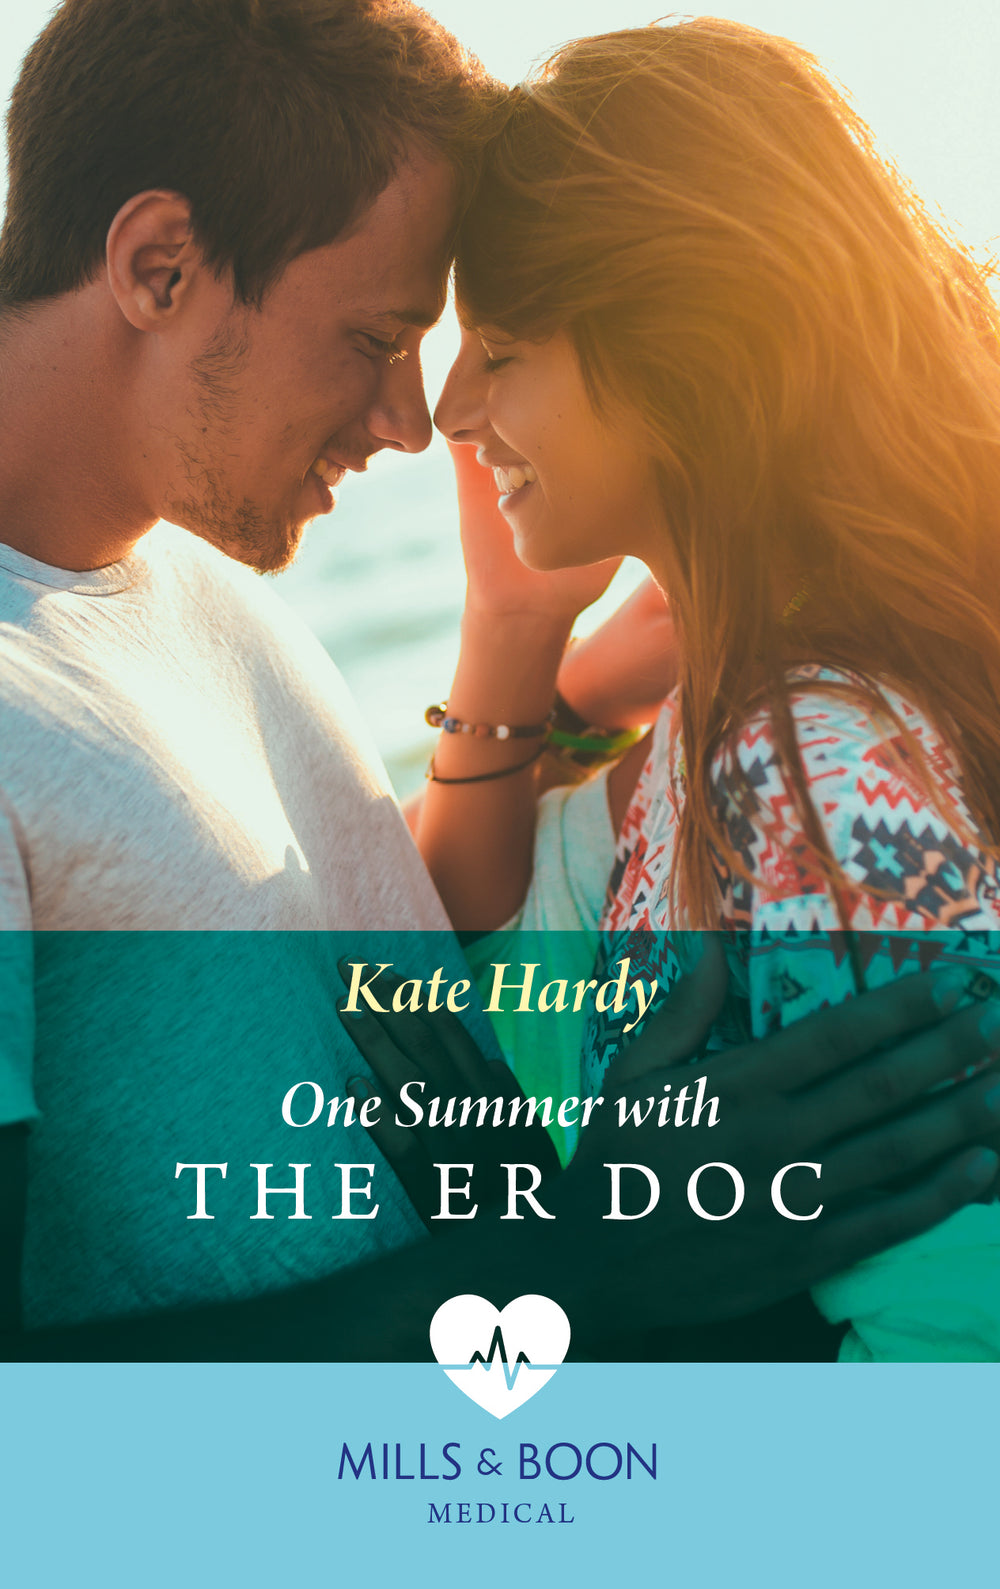 One Summer with the ER Doc - Chapter 1